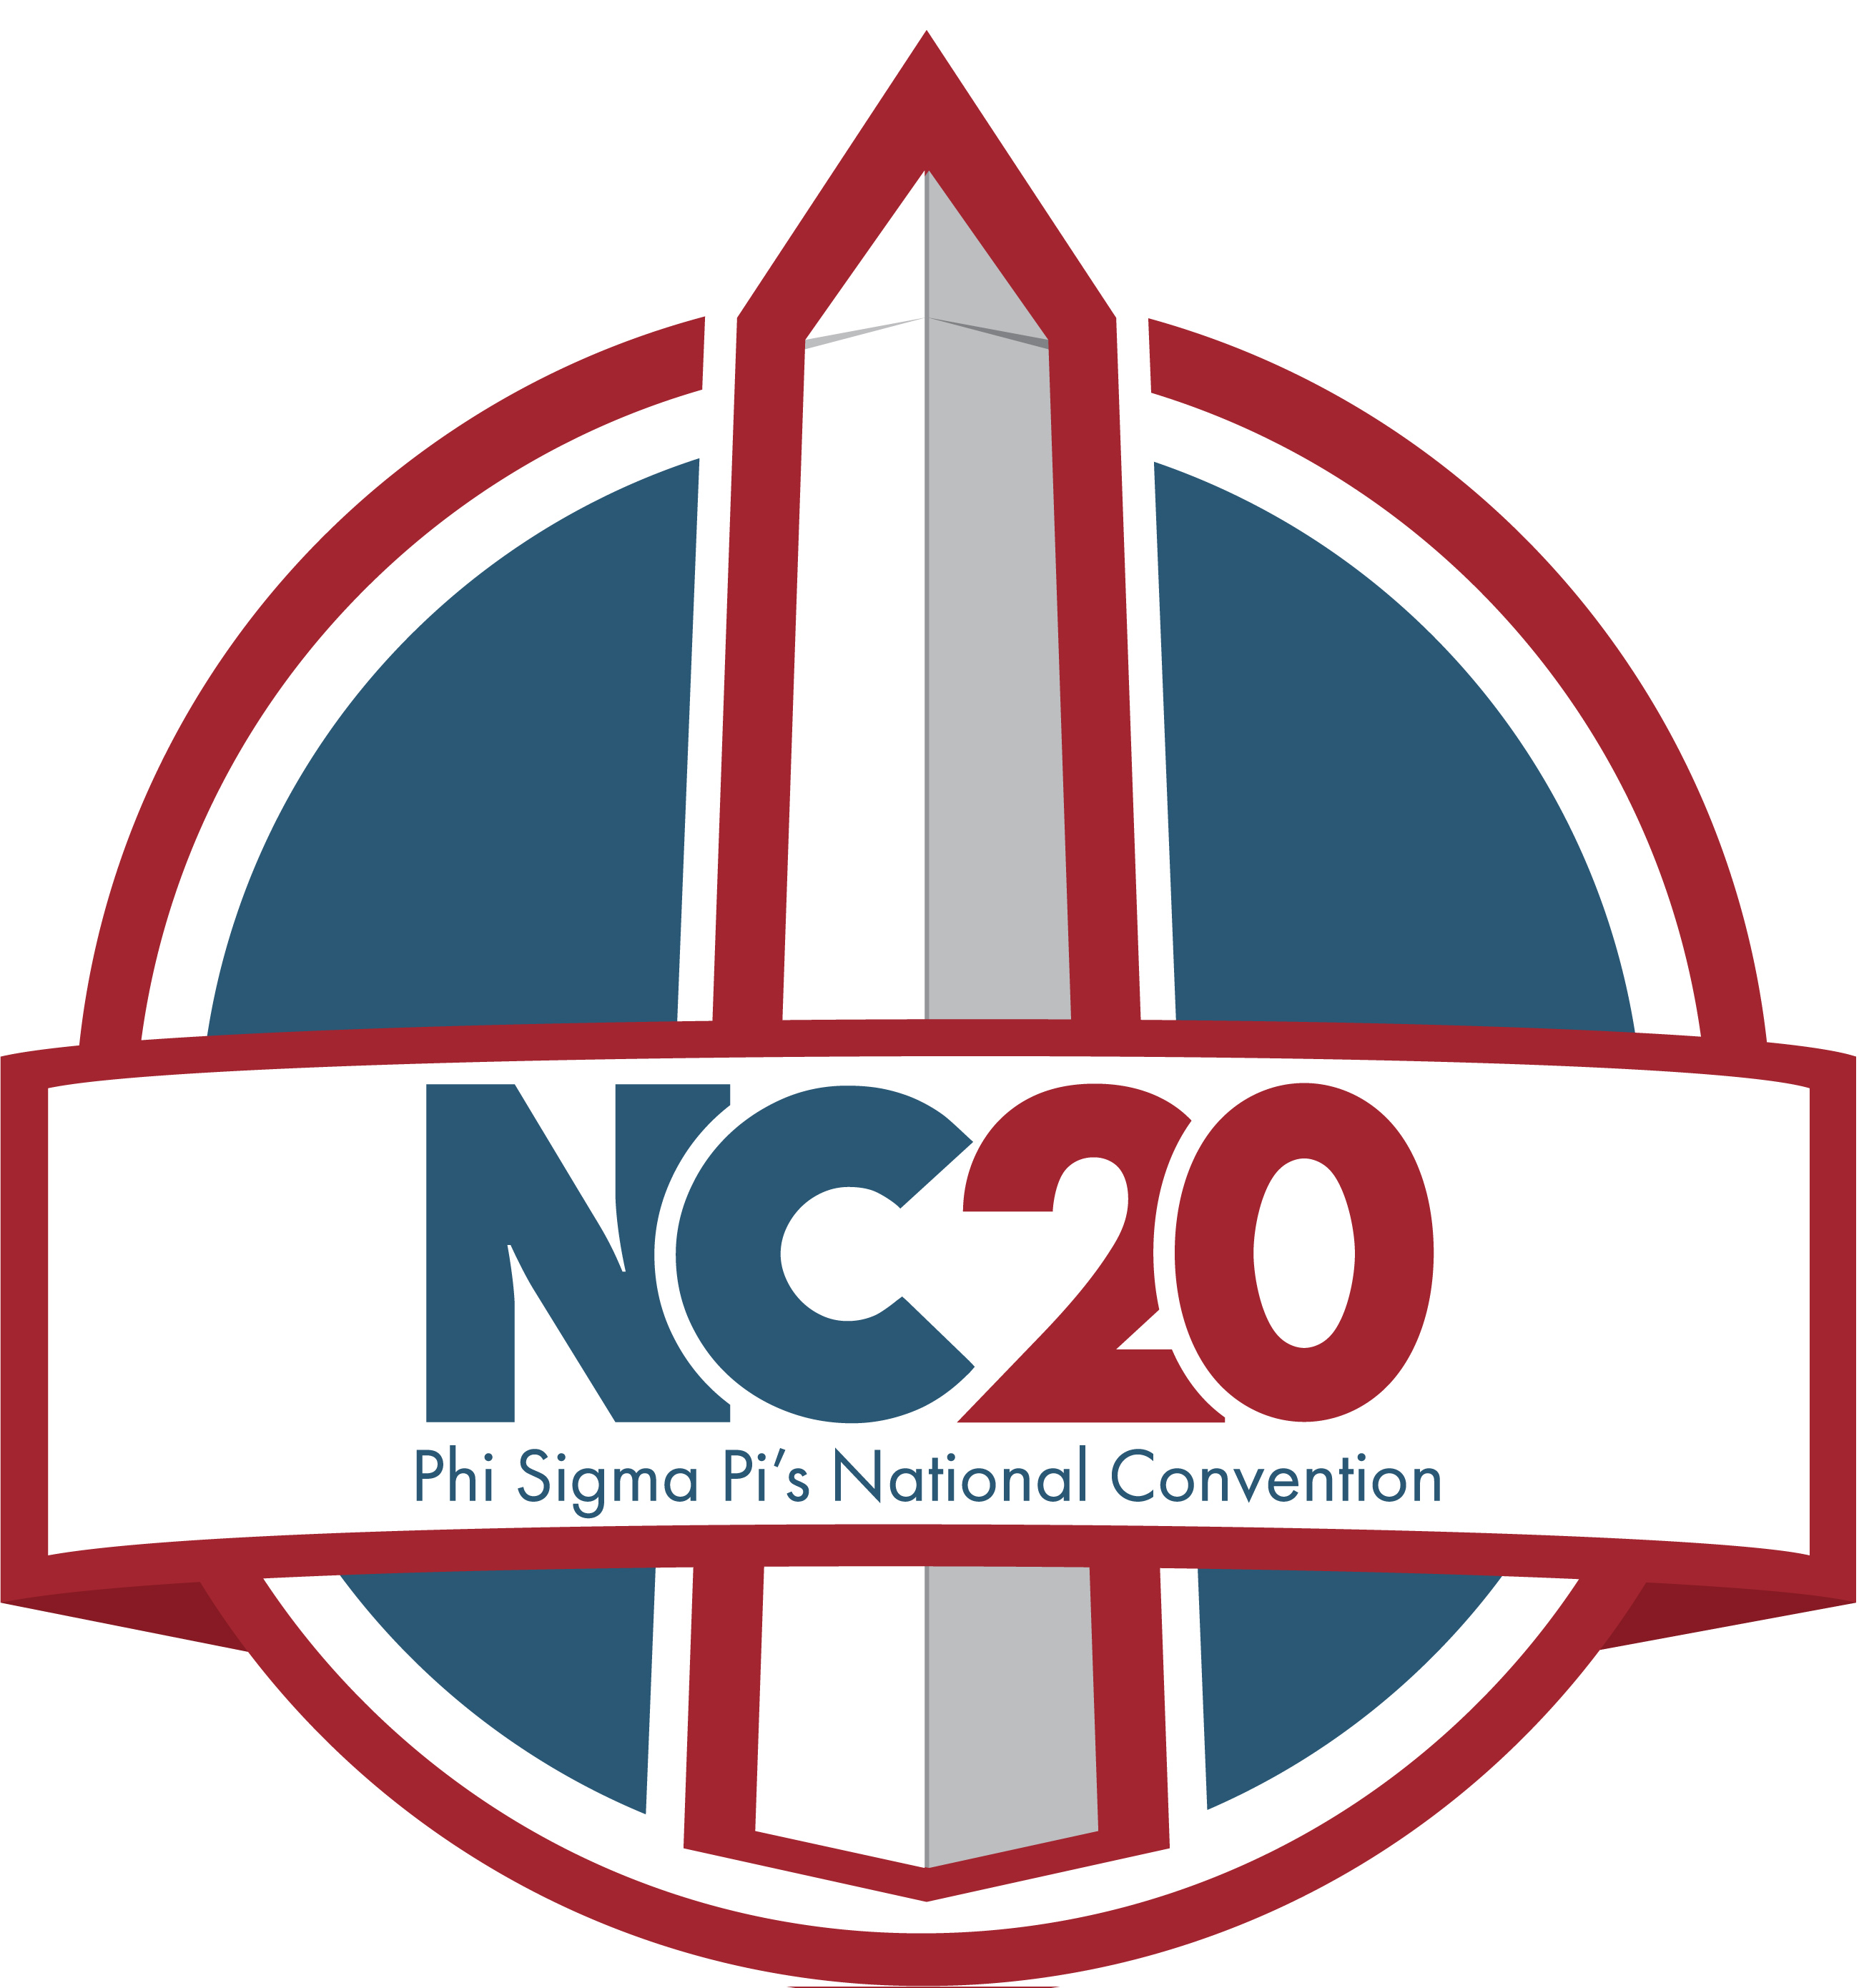 2020 National Convention